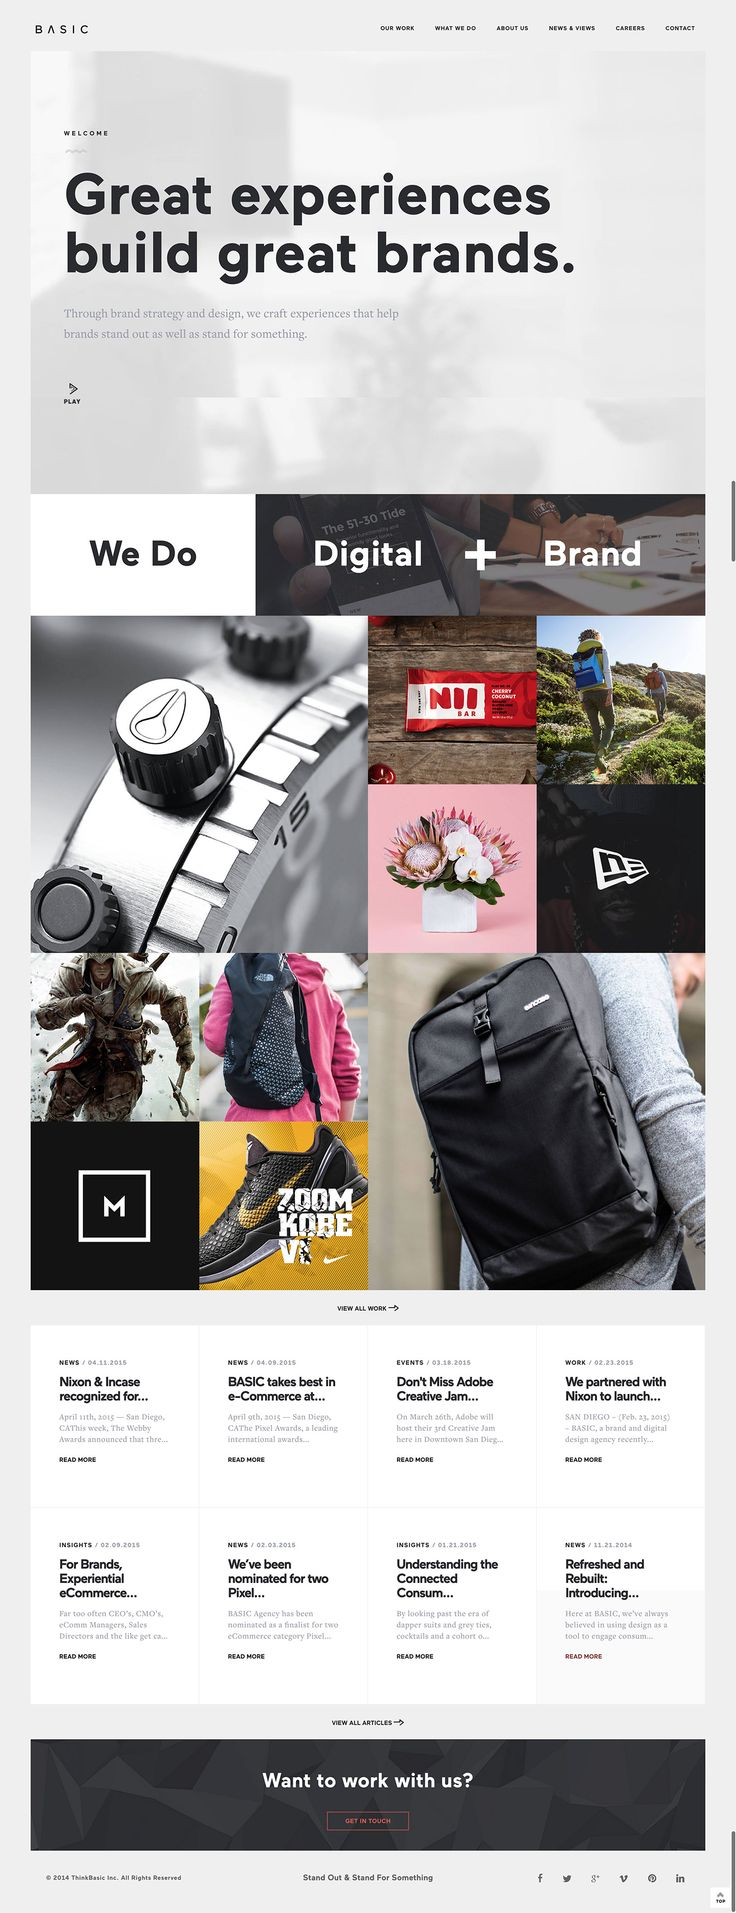 Basic – another great agency website. Strong proposition, I like the call to action of 'we do digital + brand' which pushes the user towards the area they want to view.